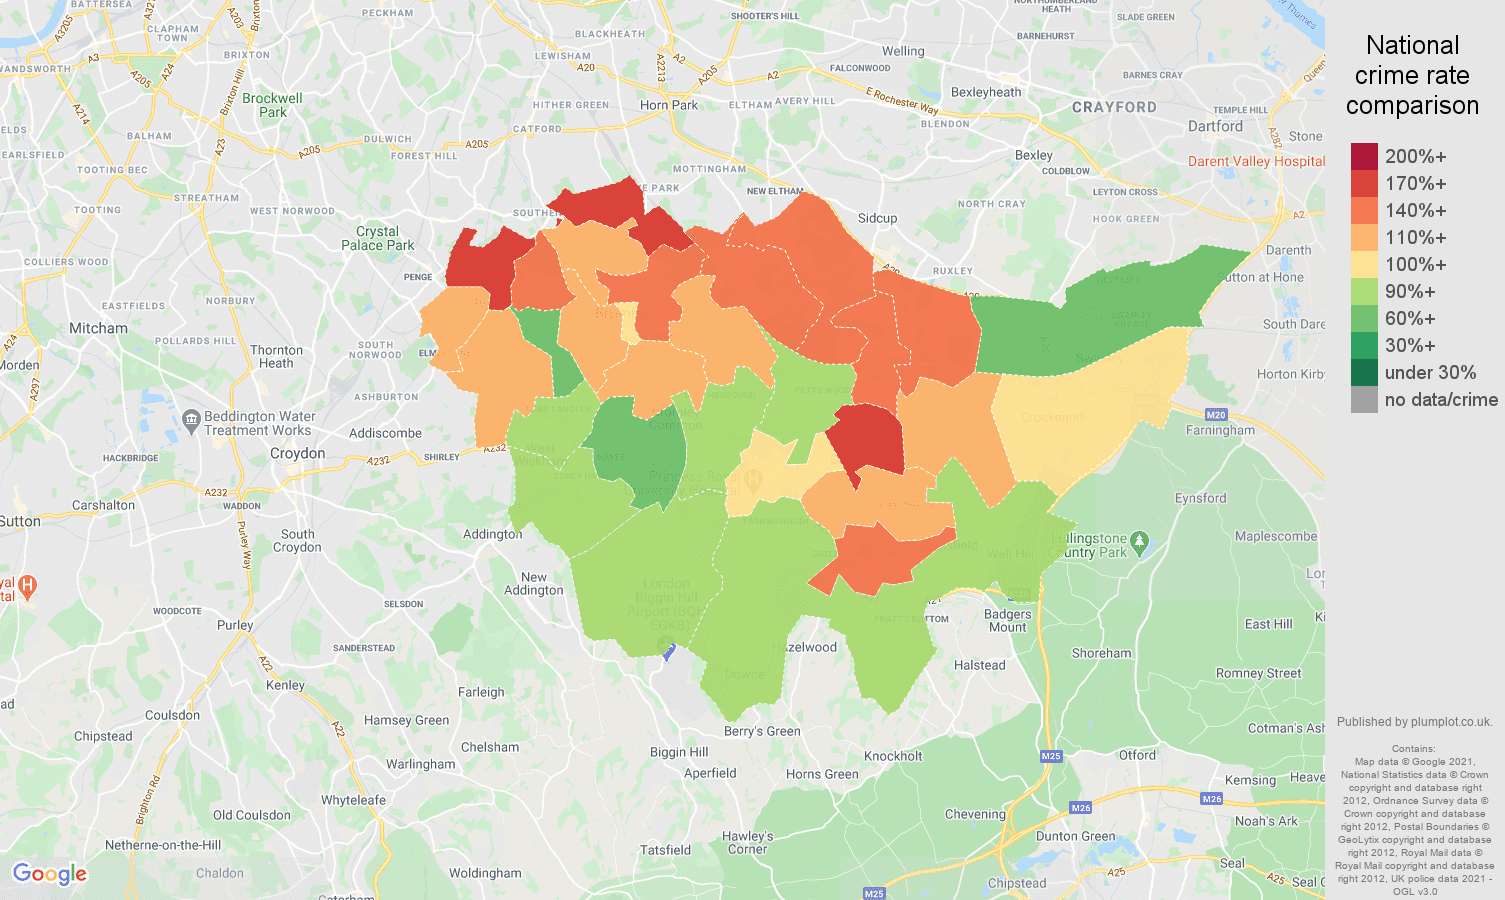 Bromley burglary crime rate comparison map